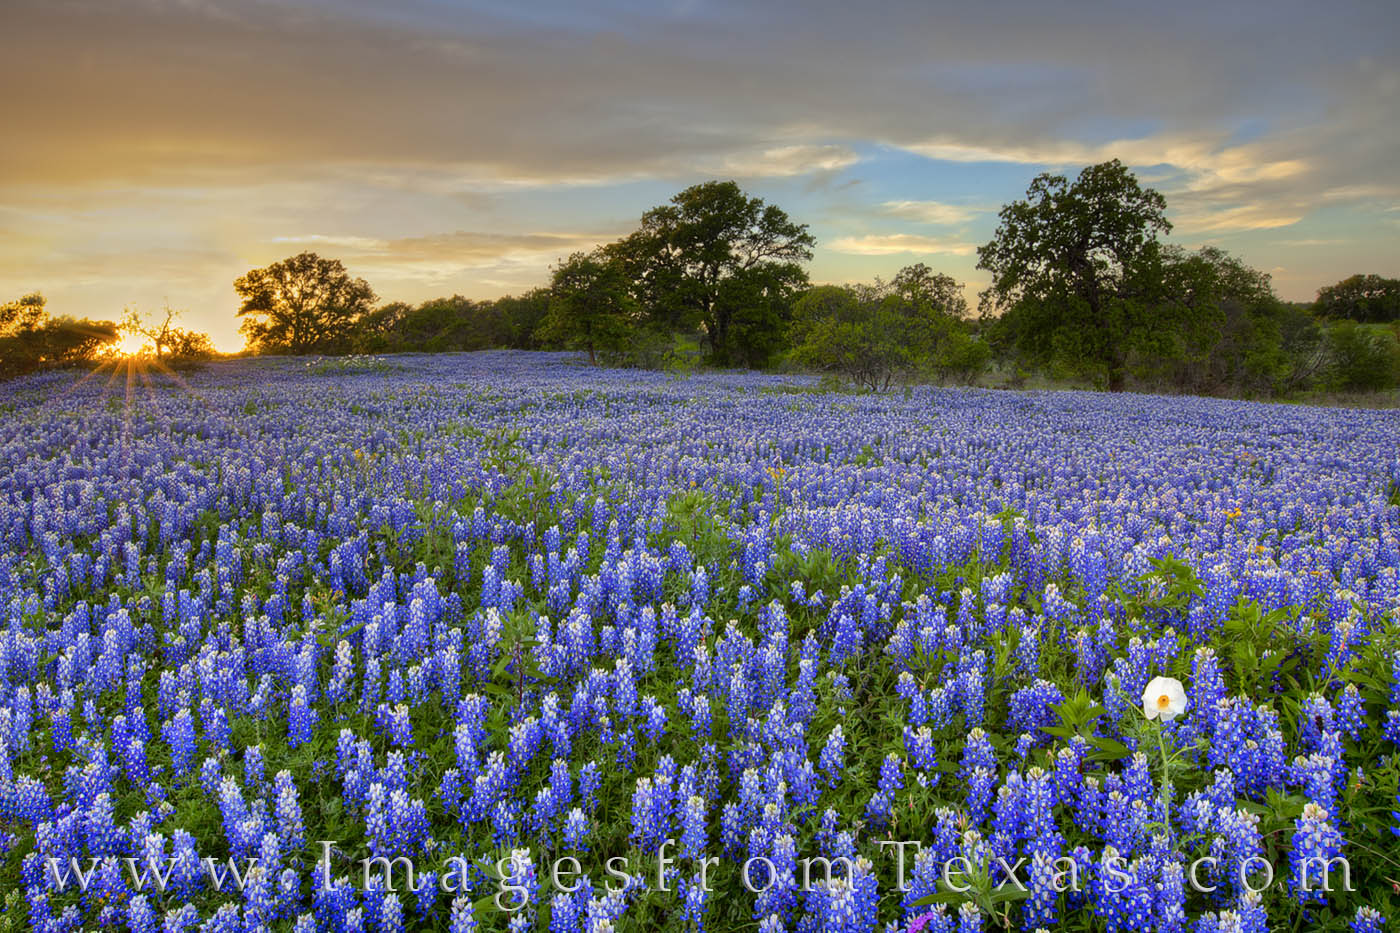 bluebonnets, san saba, hill country, wildflowers, country roads, sunset, photo